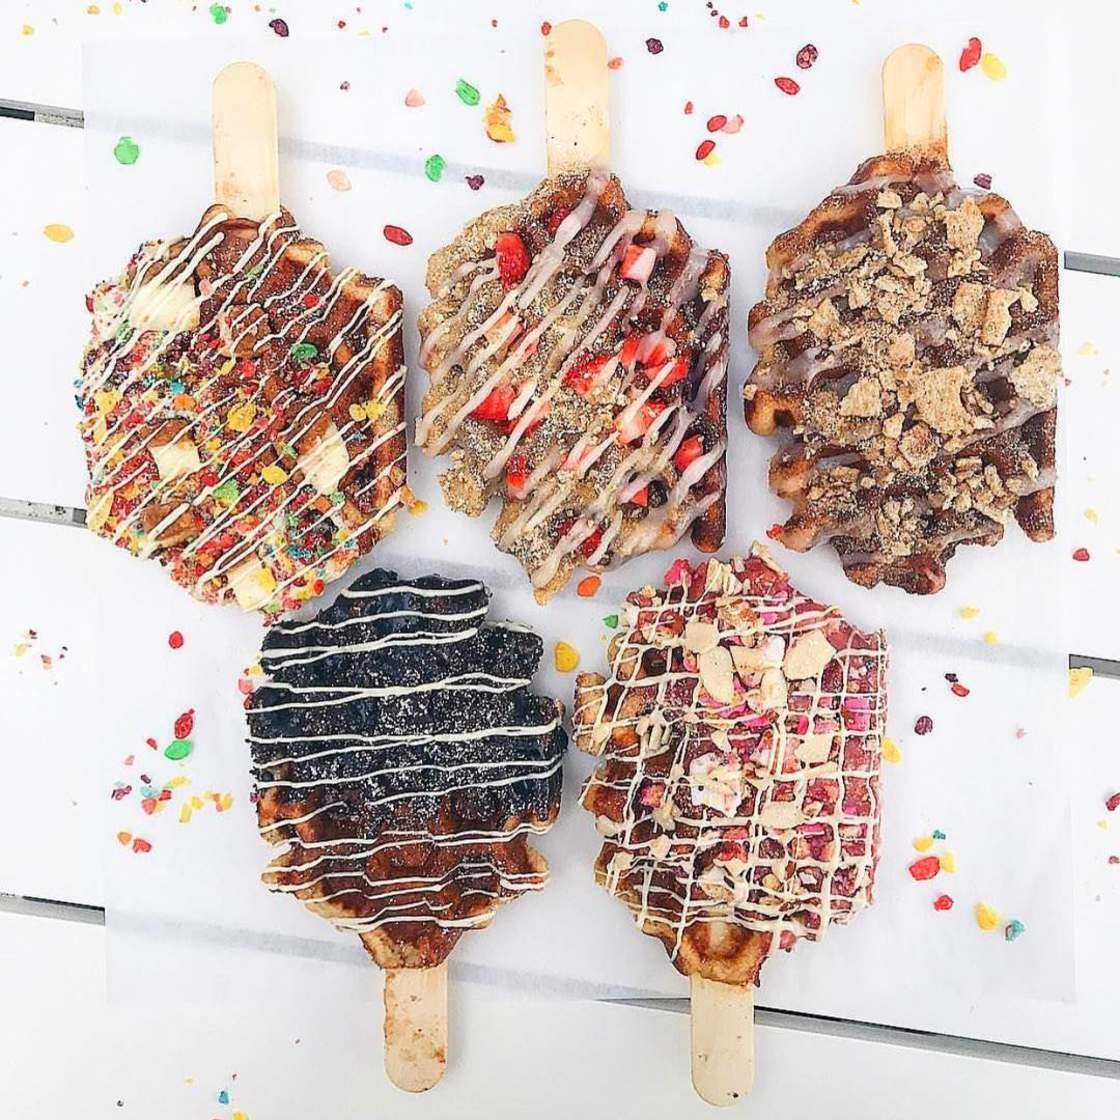 Waffle Pops – The appetizing creative waffles of Sweet Combforts